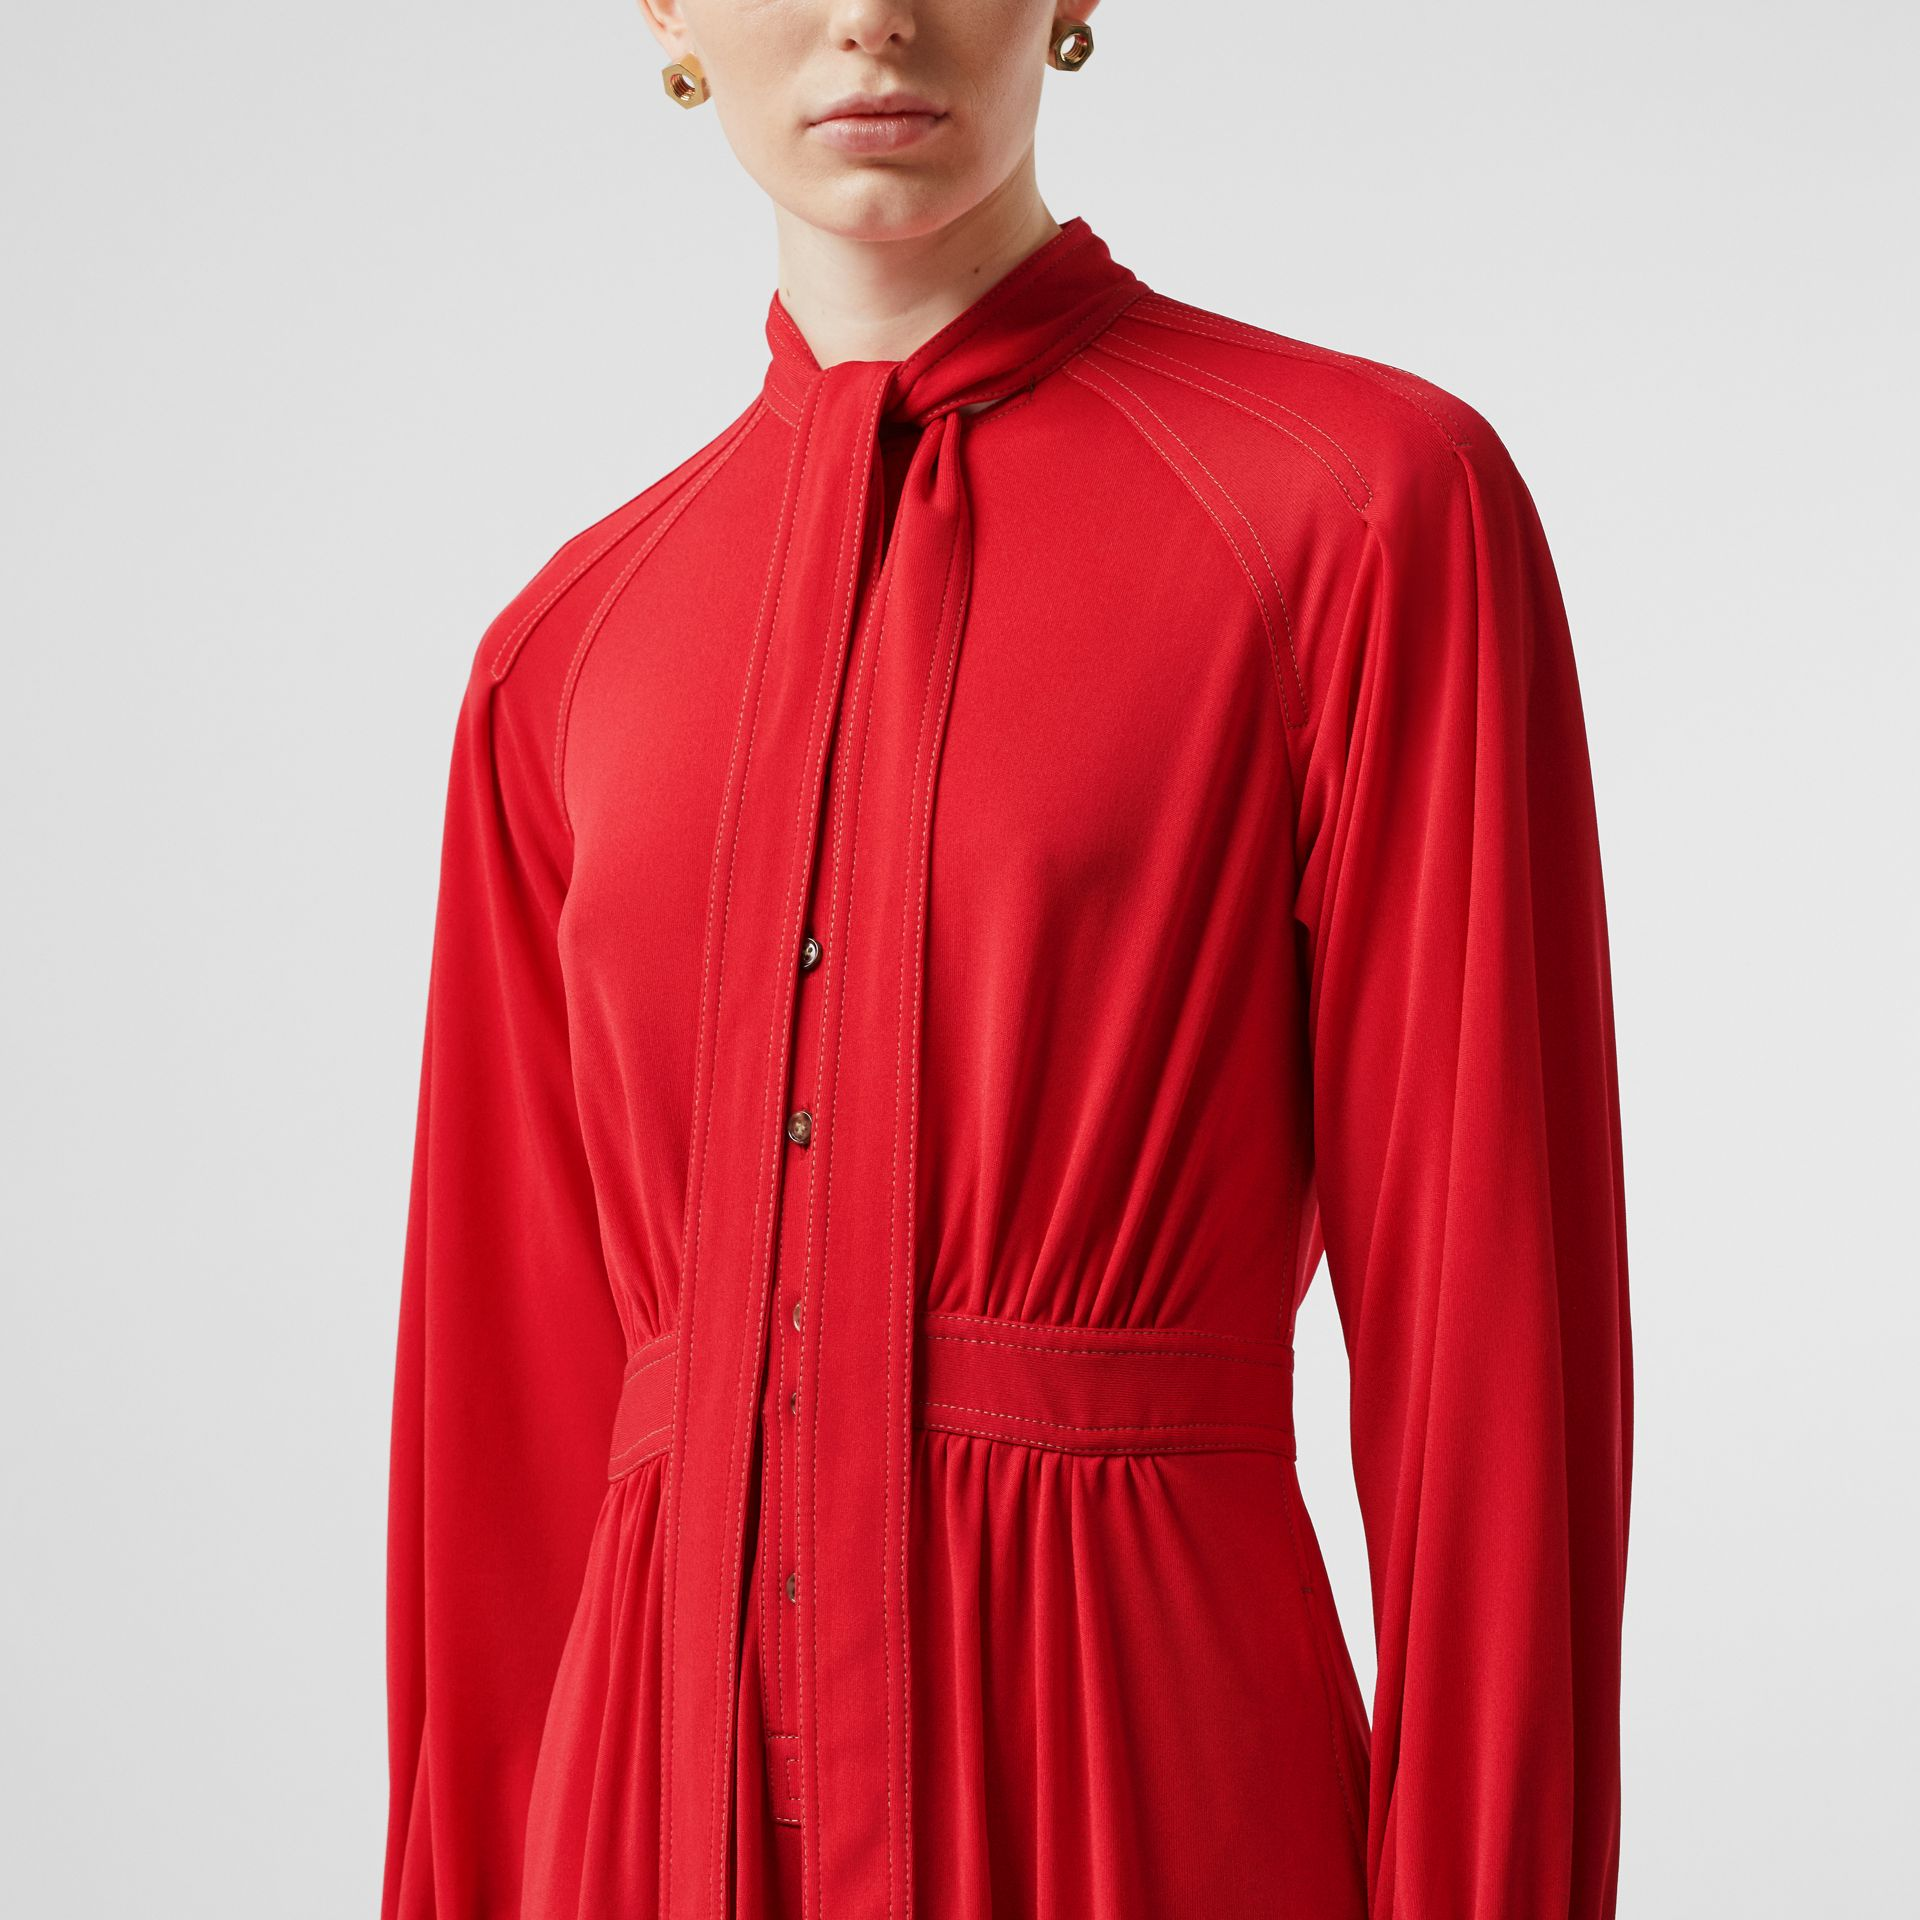 Topstitch Detail Jersey Tie-neck Dress in Bright Red - Women | Burberry Australia - gallery image 4